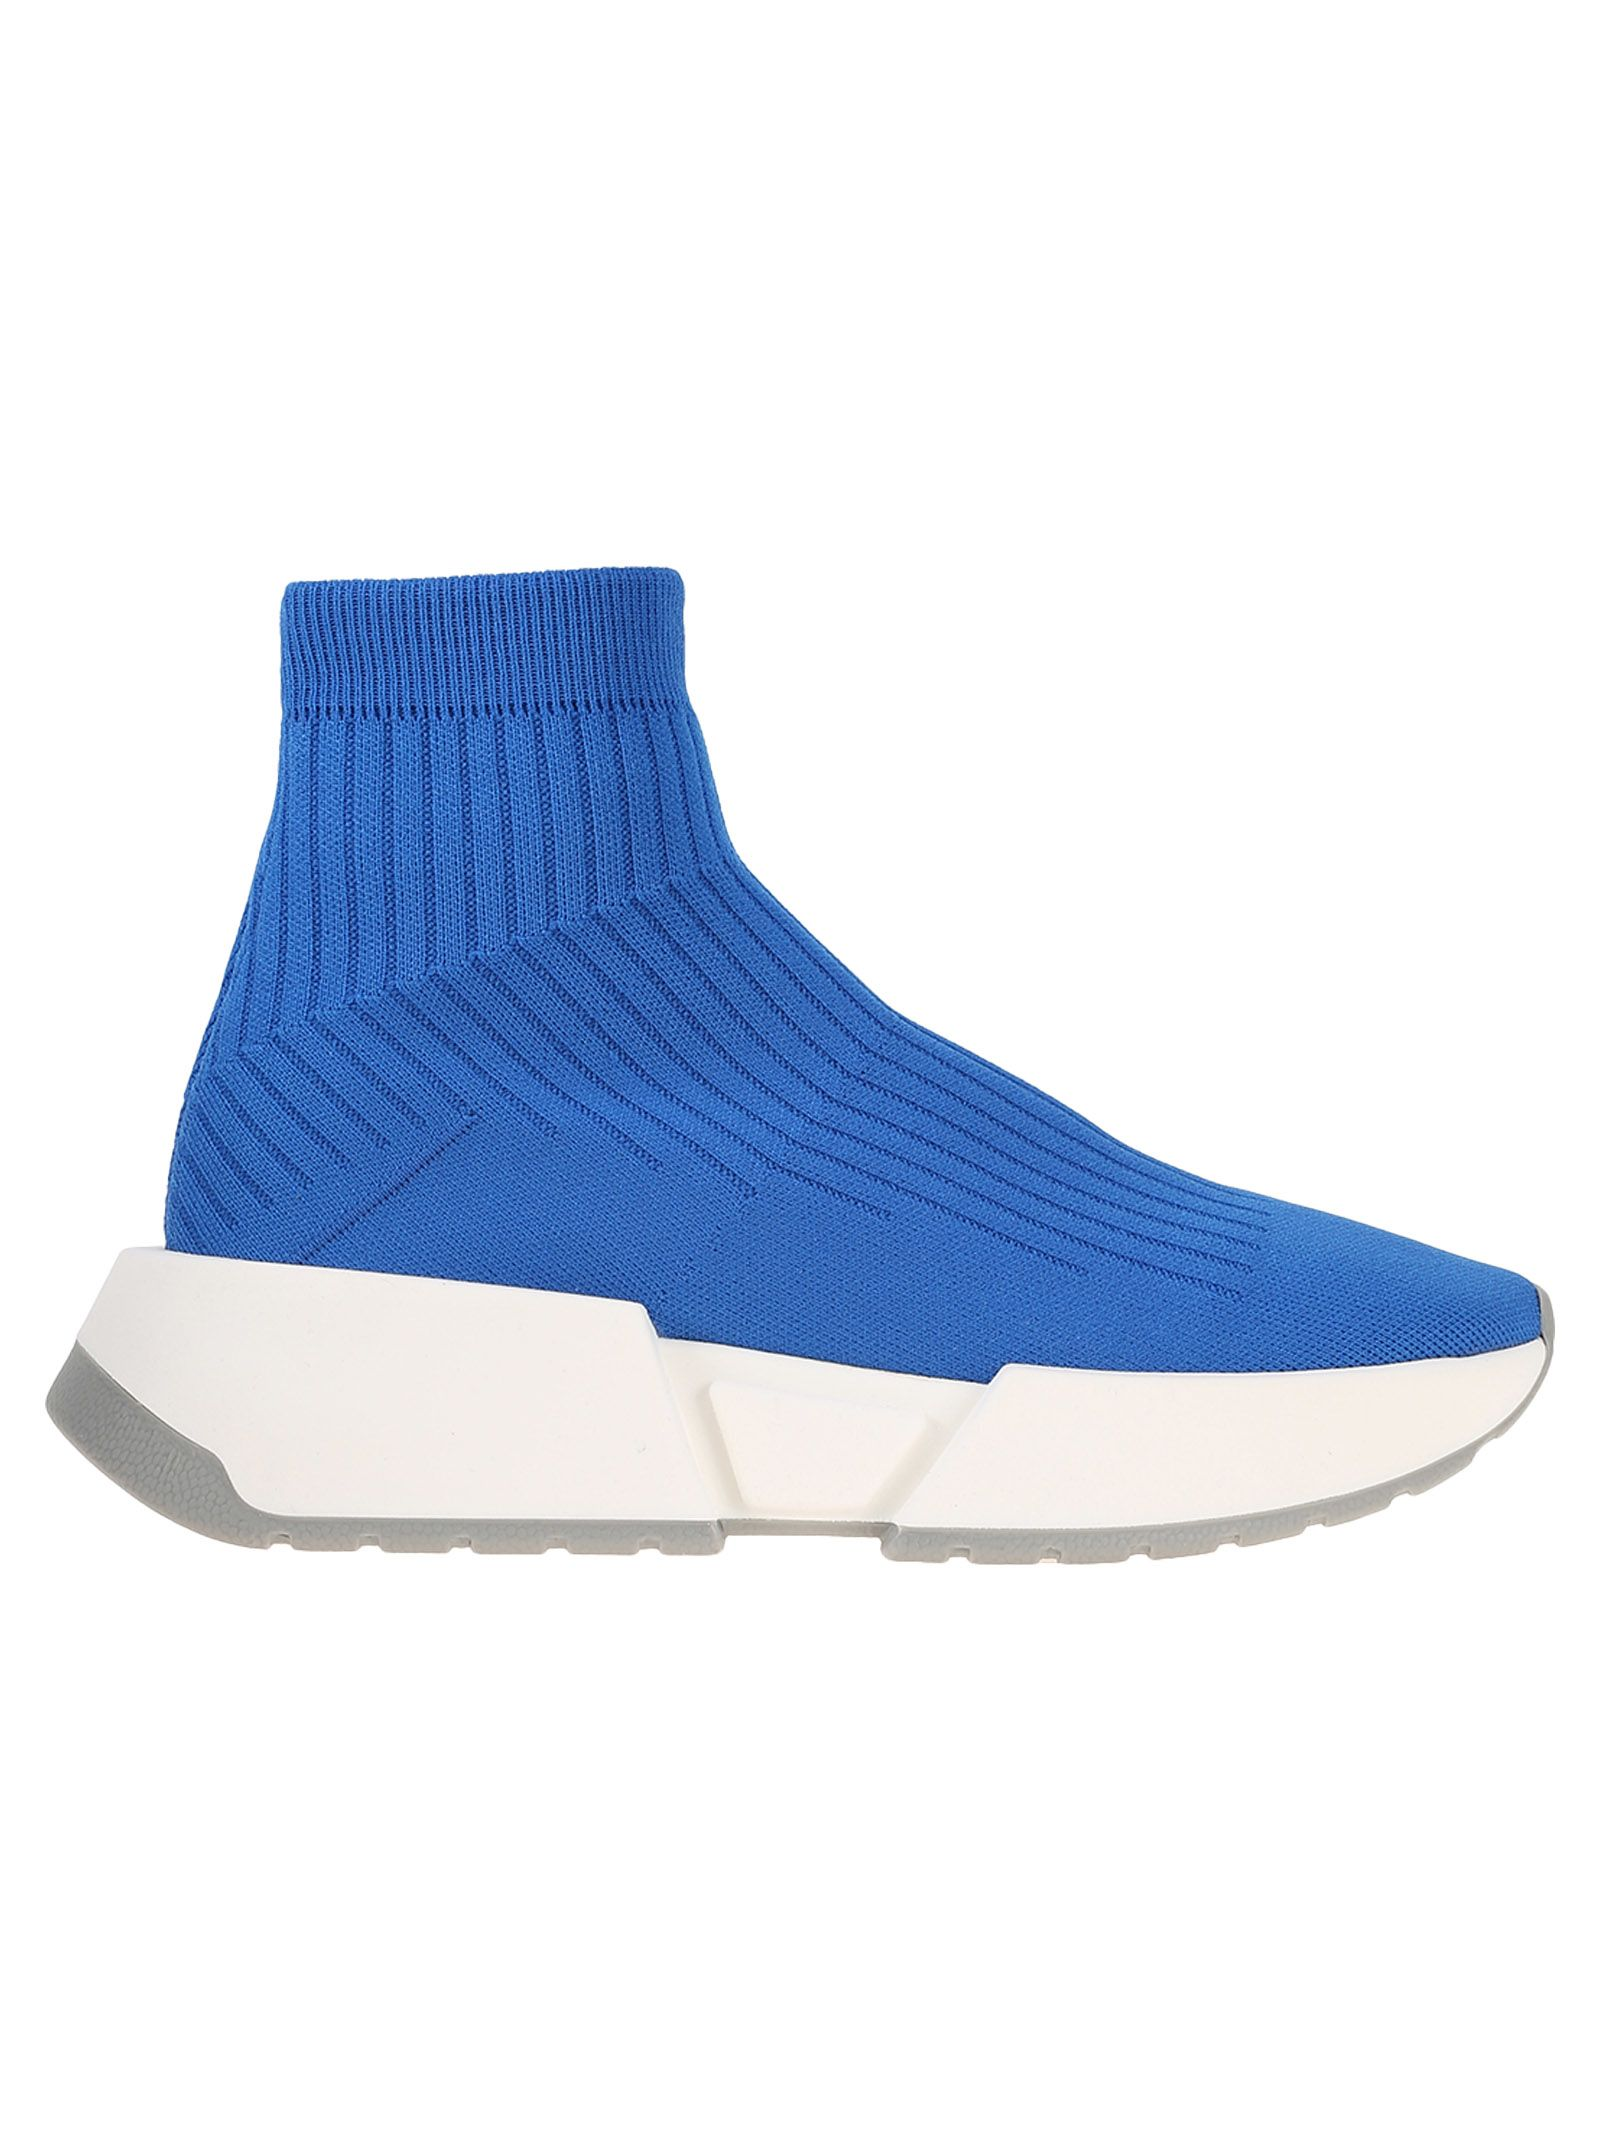 MM6 MAISON MARGIELA MM6 SOCKS SNEAKER